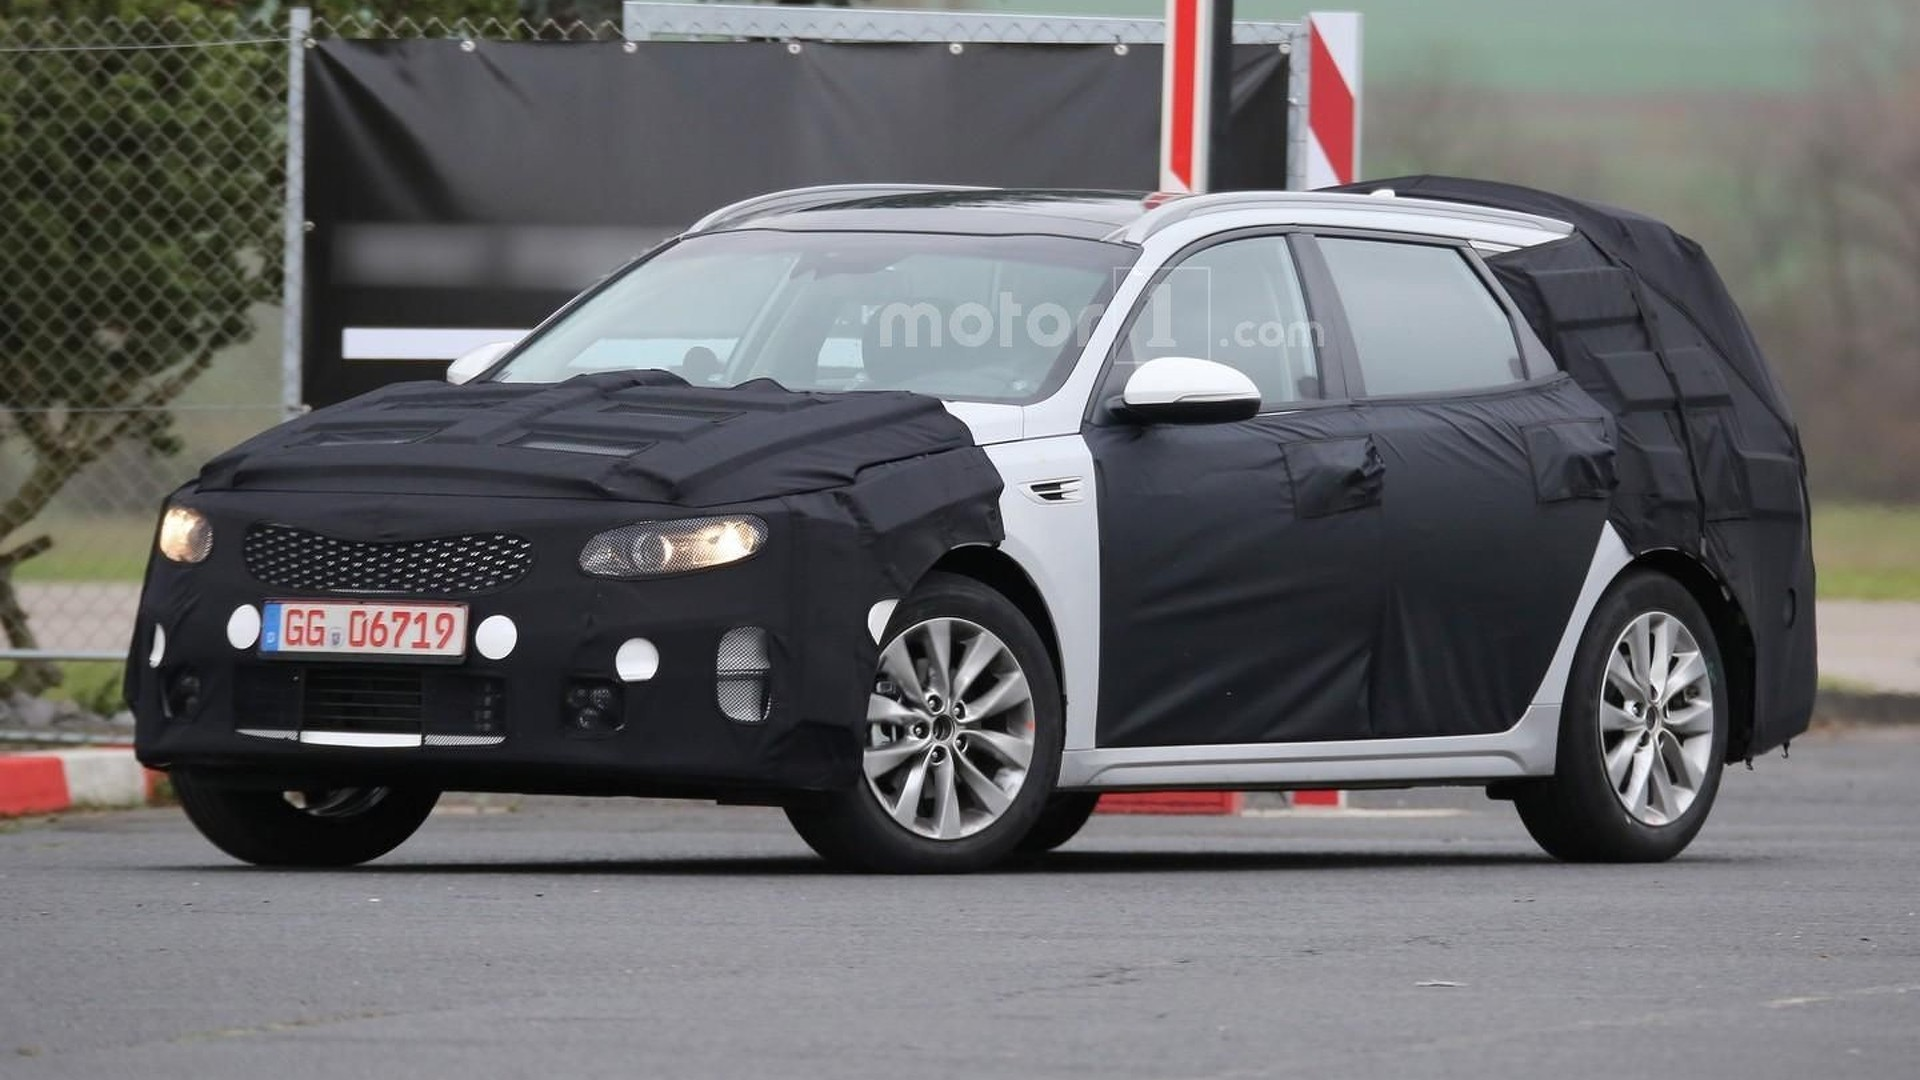 Kia Optima Sw Prototype Benchmarked Against The Pat Insignia Mazda6 And I40 Estates